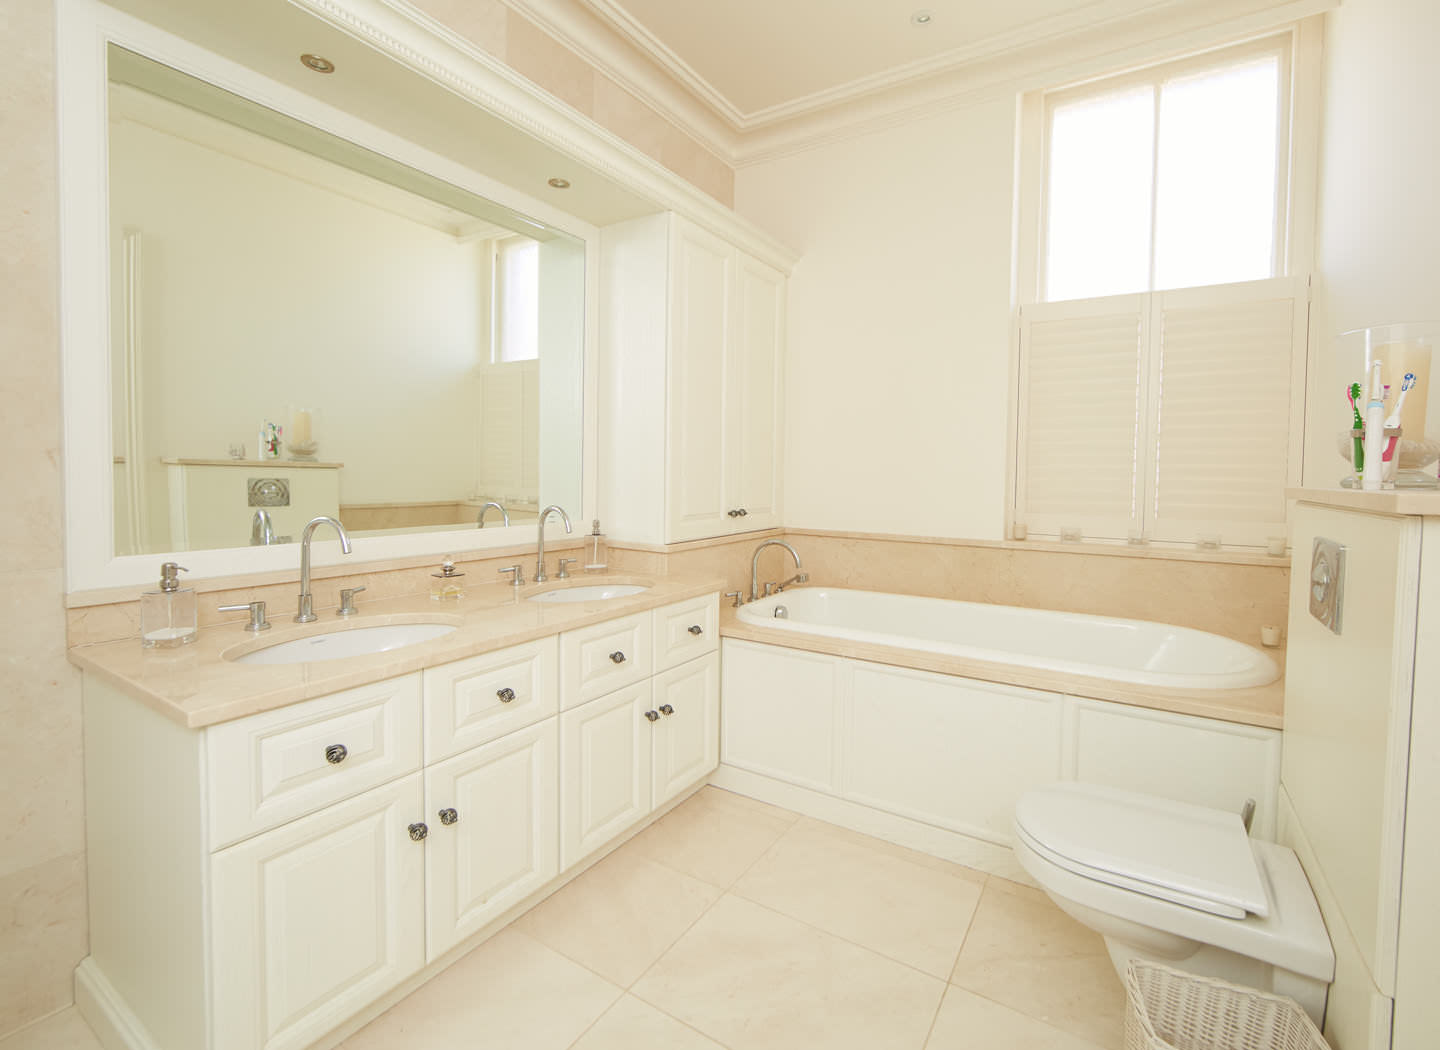 Case study showing fitted cabinets in bedroom en suite